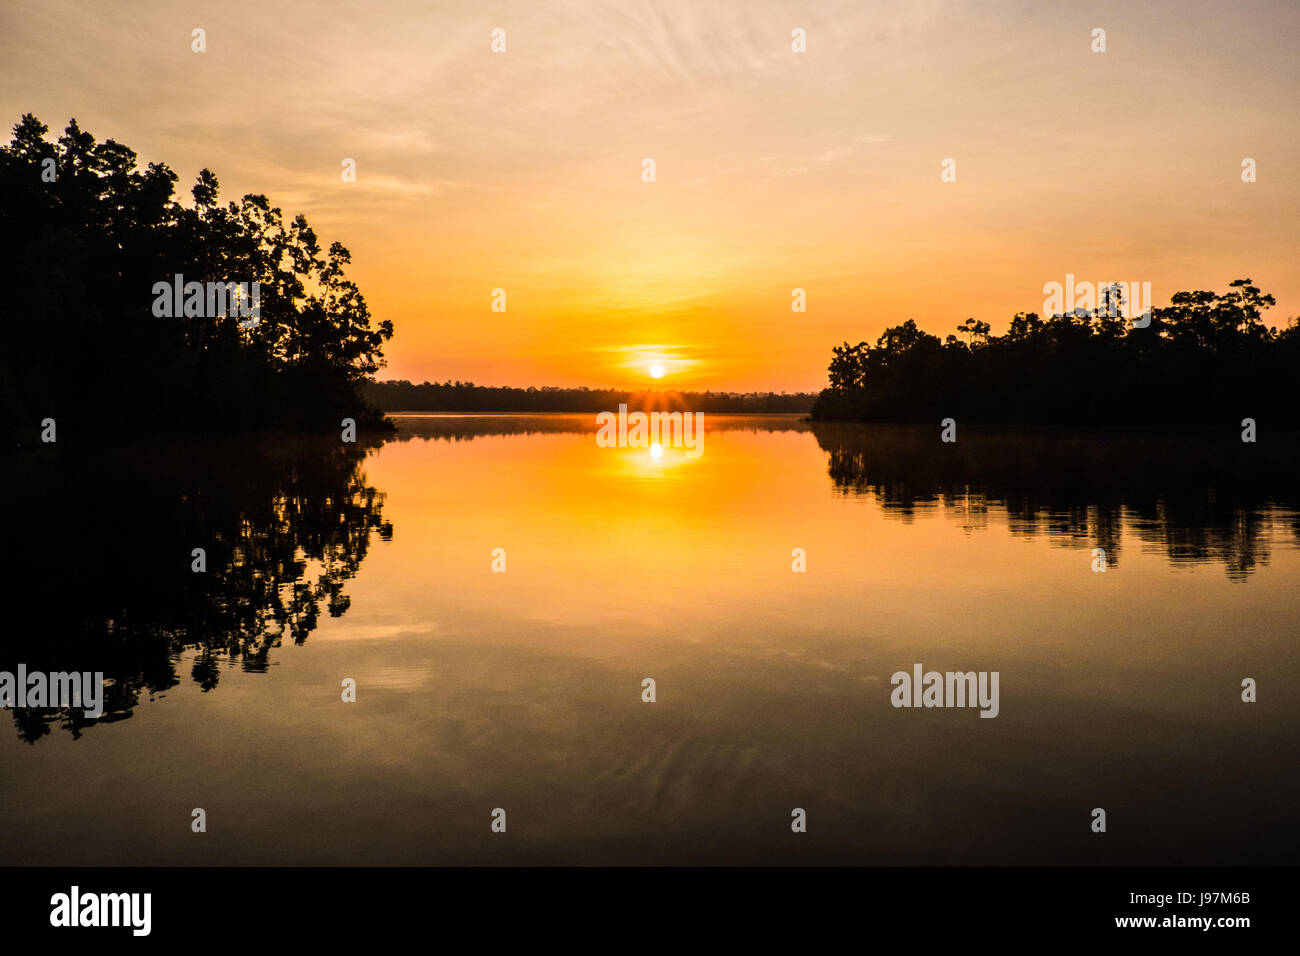 Sunset at Lake Sentarum in the Heart of Borneo, west Kalimantan, Indonesia. - Stock Image